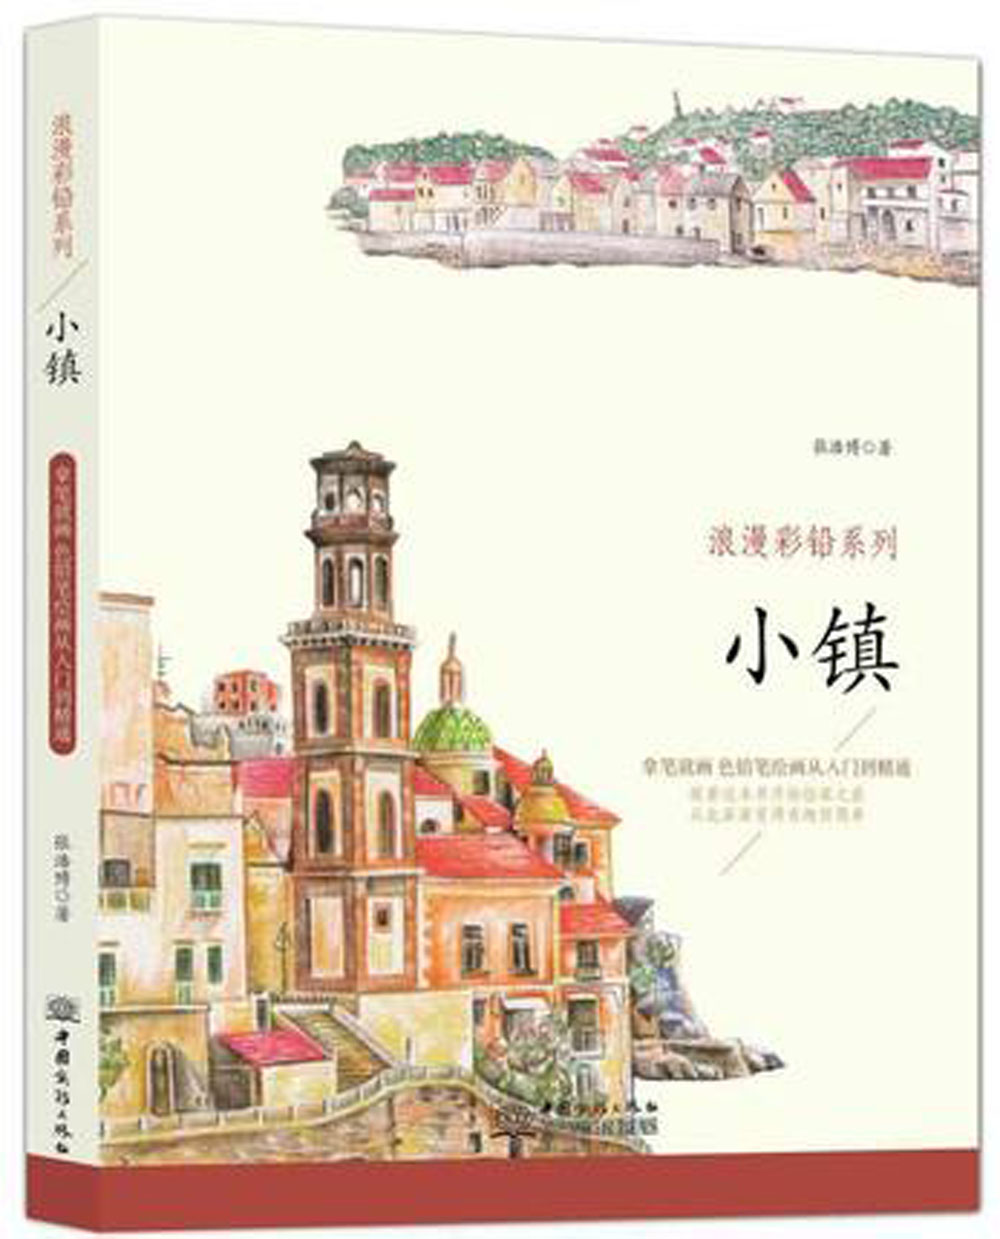 Chinese Color Pen Pencil Drawing Book About Small Town Chinese Art Techniques Painting Coloring Book